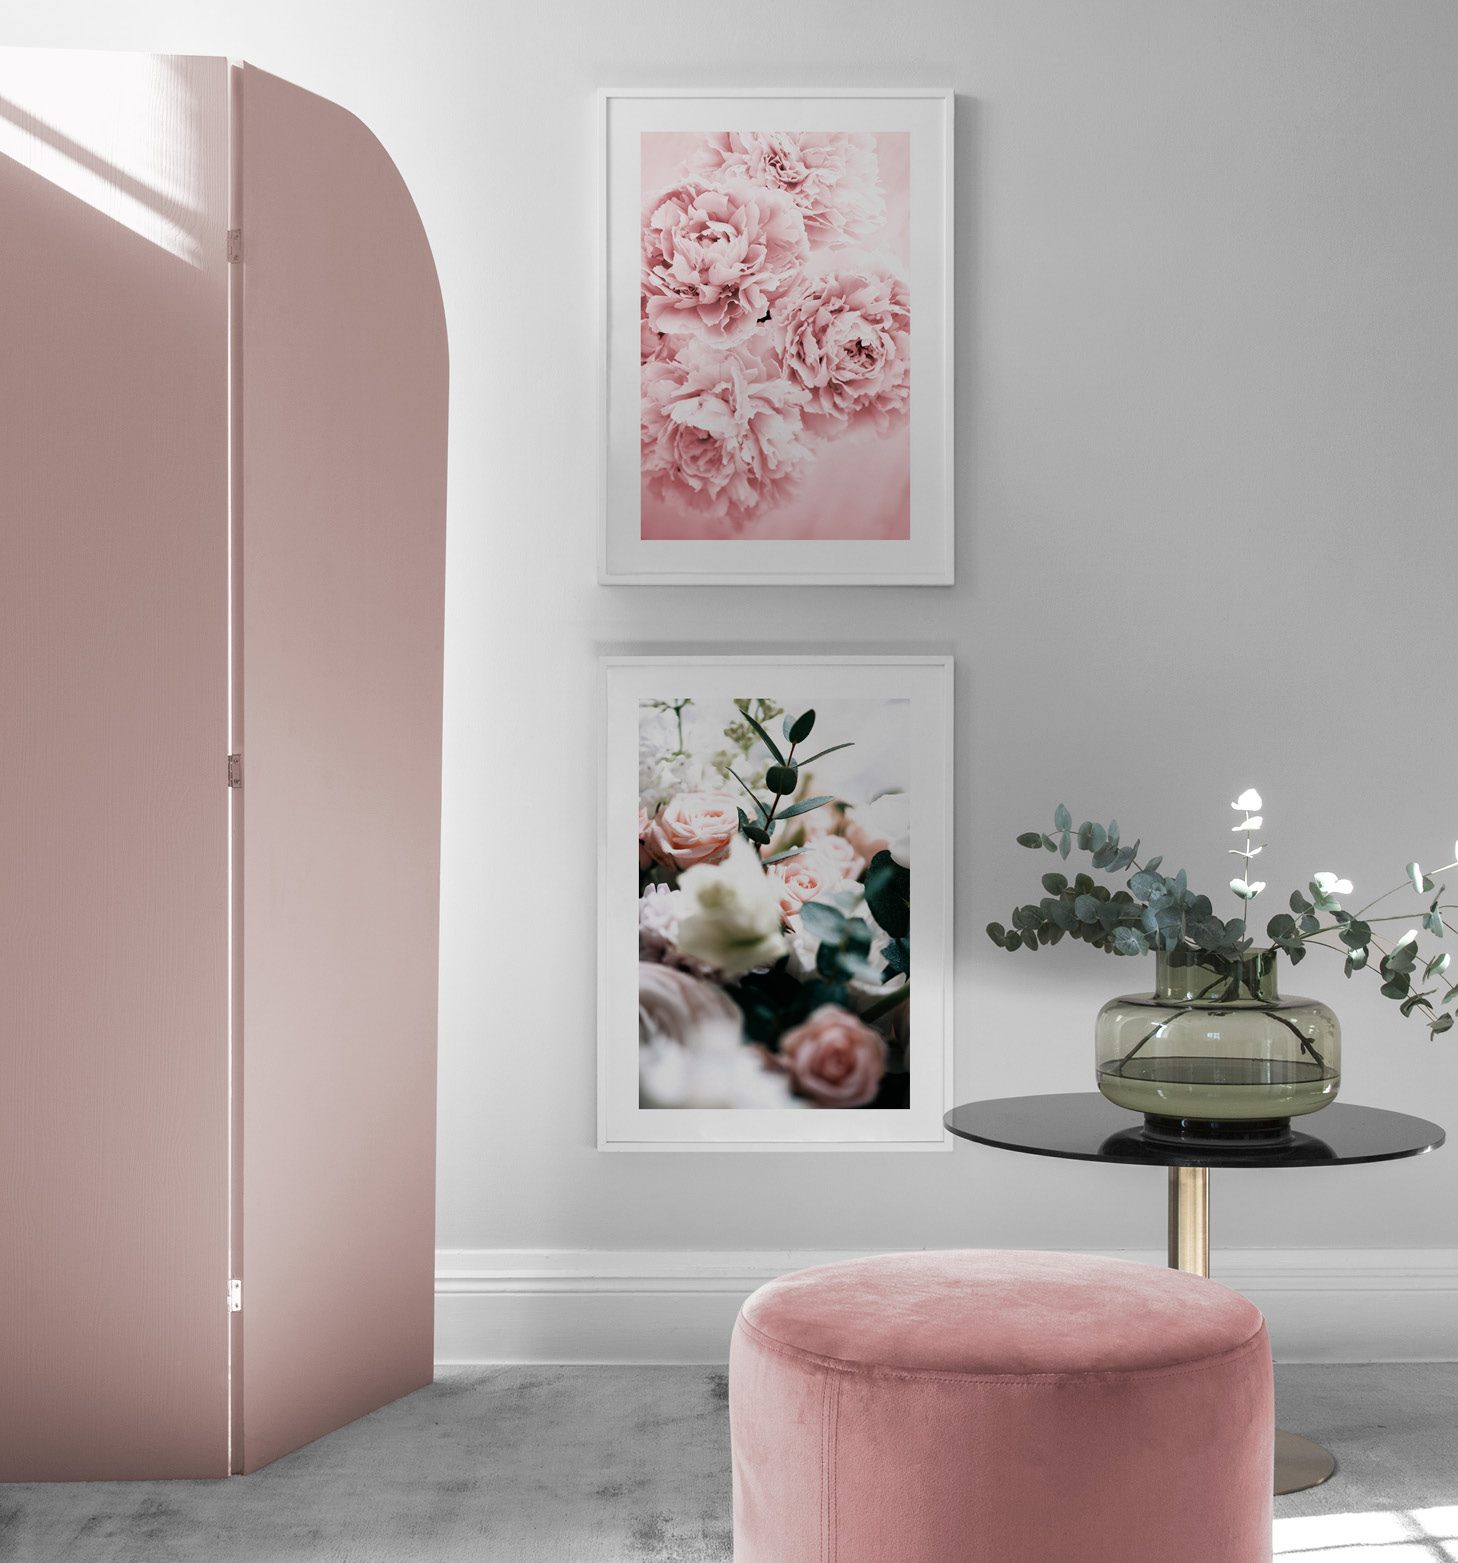 Feminine interior with flower posters and white picture frames